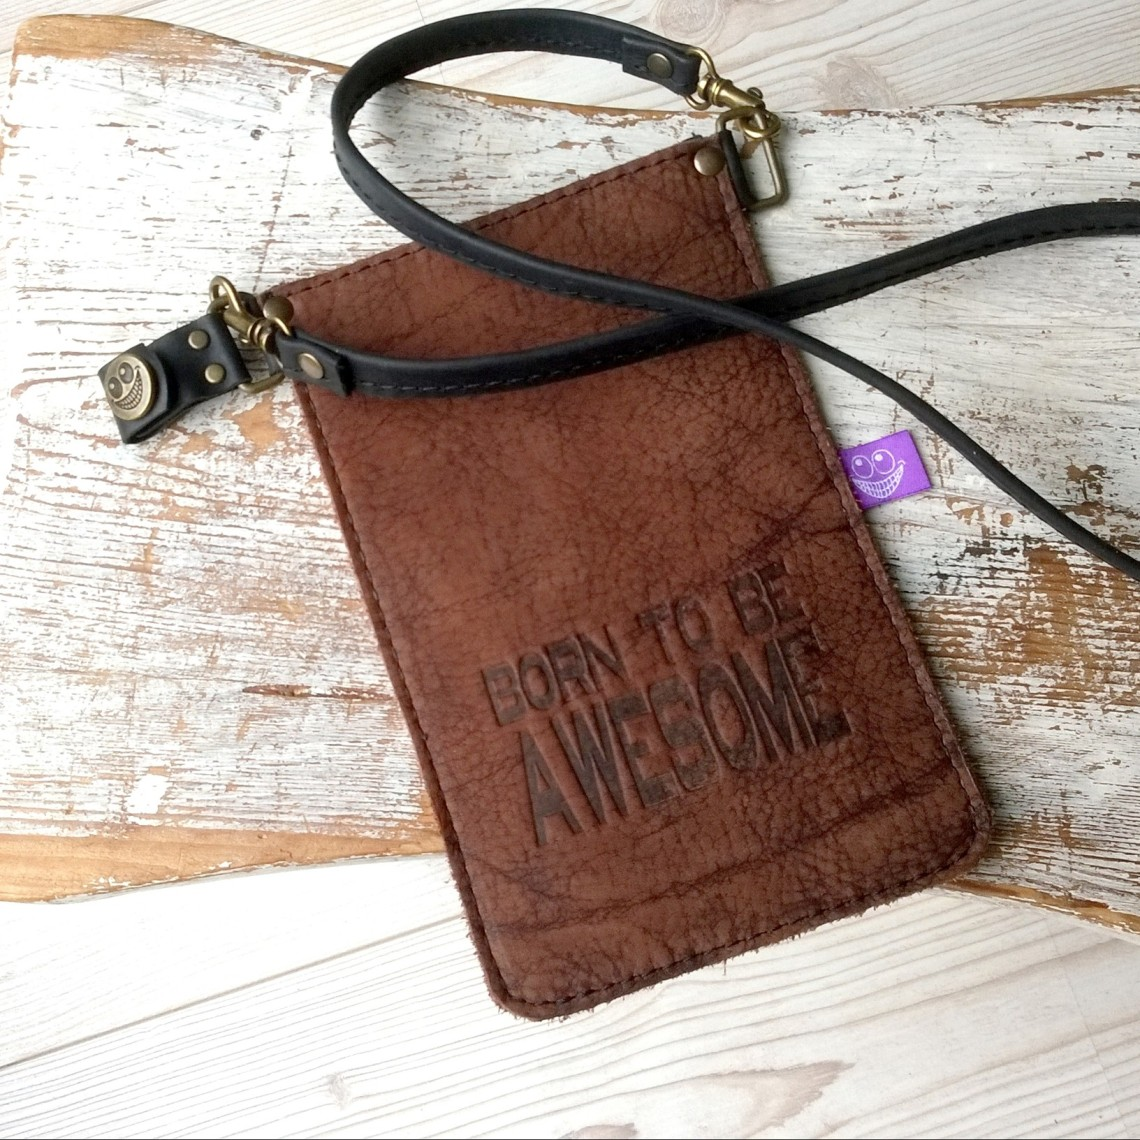 Small leather purse for mobile phone